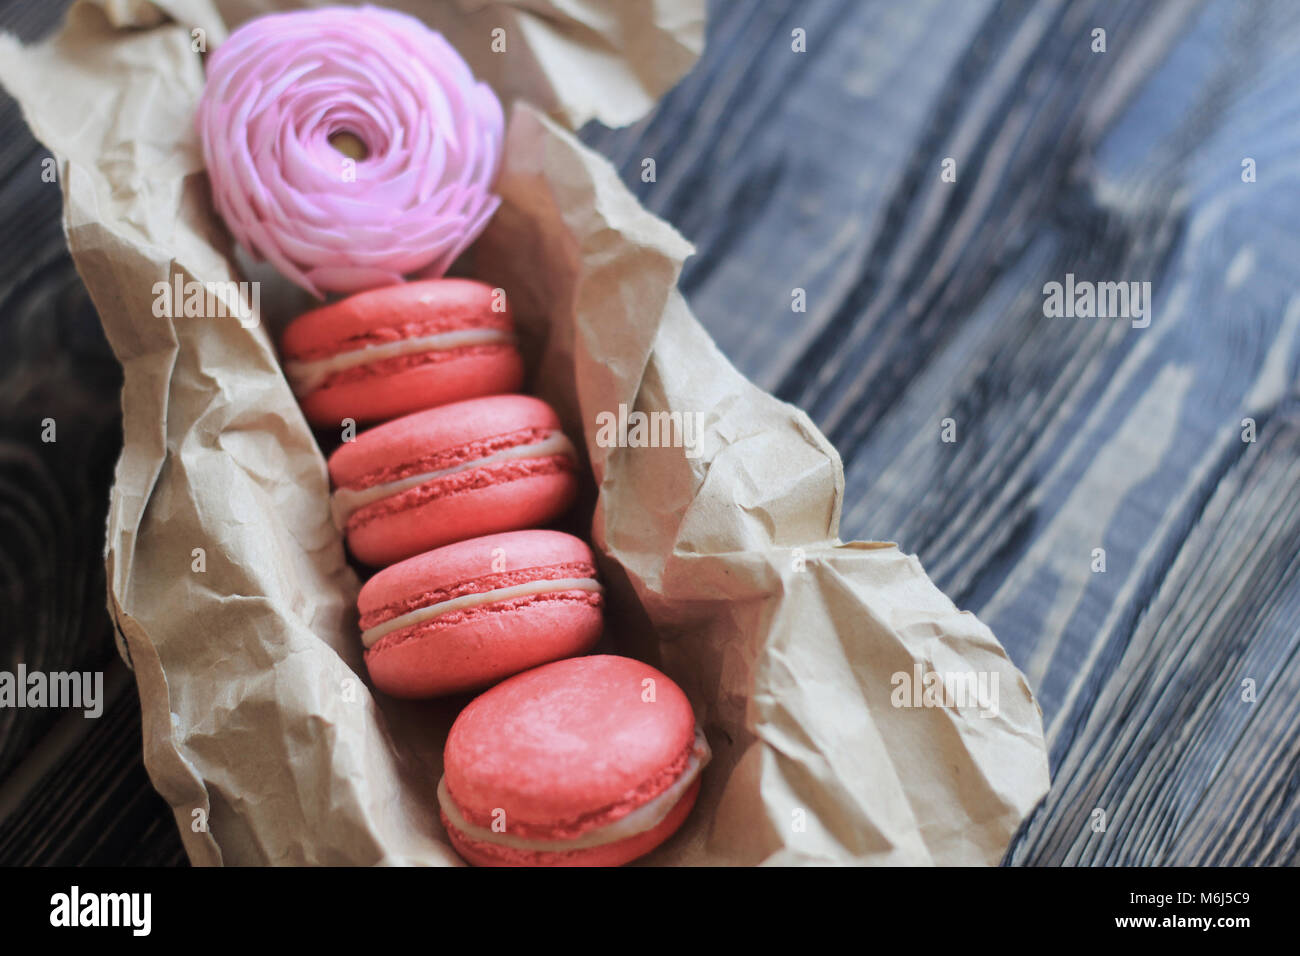 Colorful macaroons and flowers on table - Stock Image